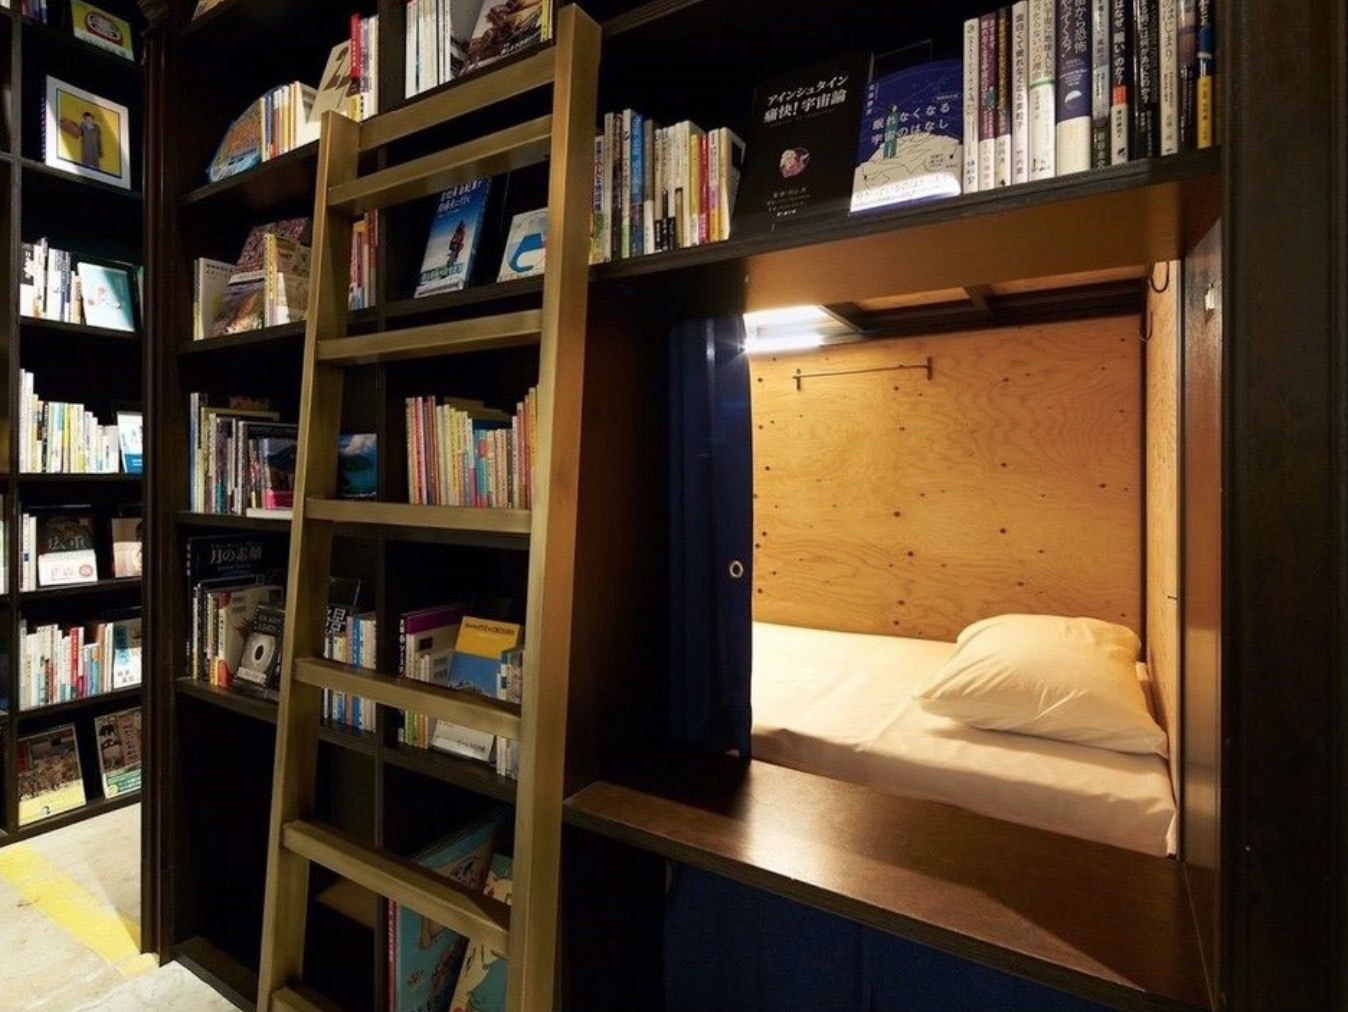 This Japanese library you can actually rent a bed in